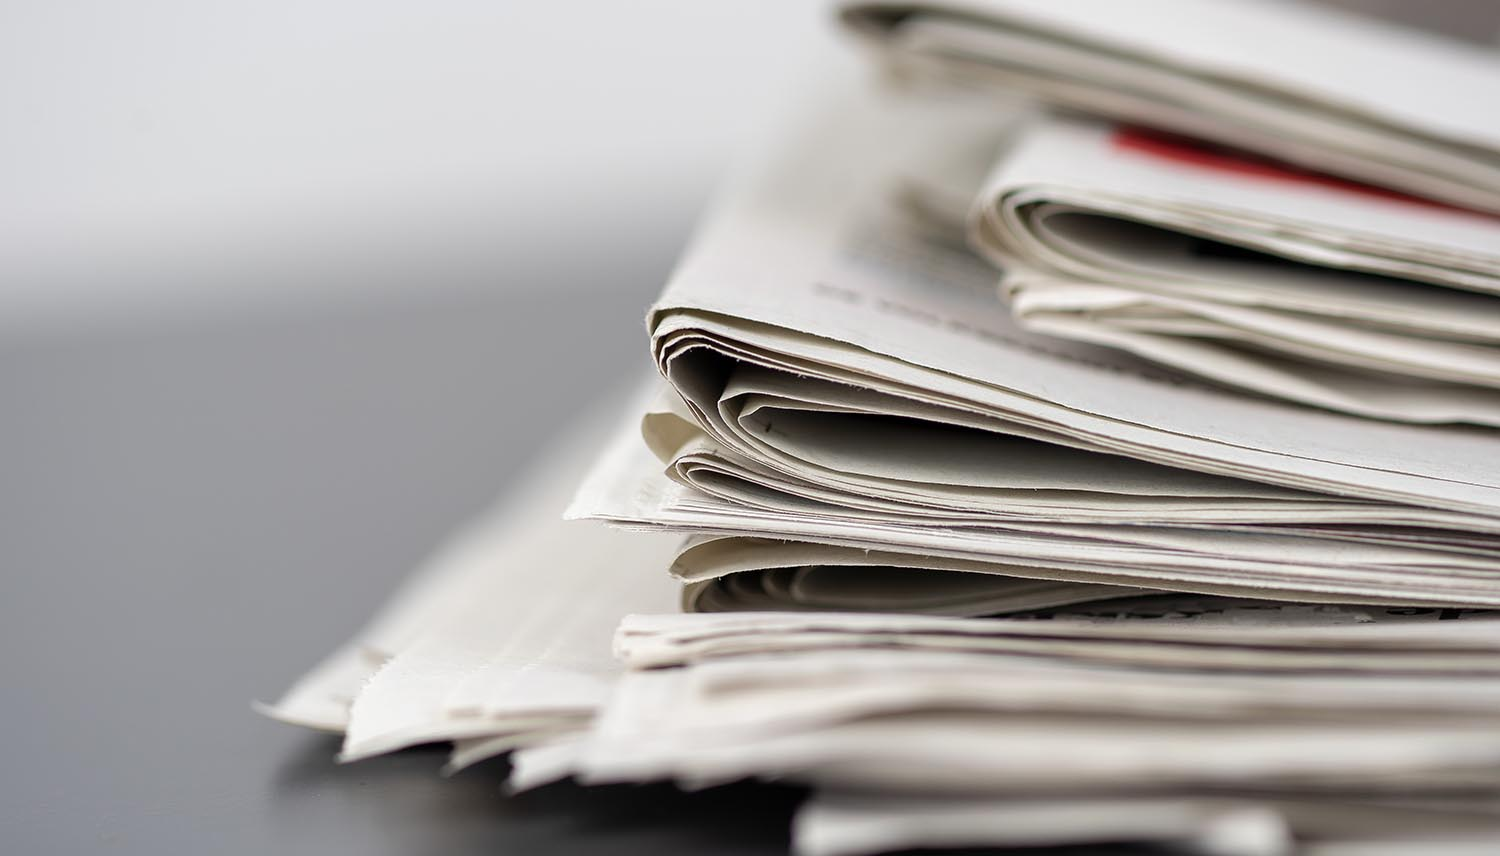 Closeup shot of several newspapers stacked on top of each other